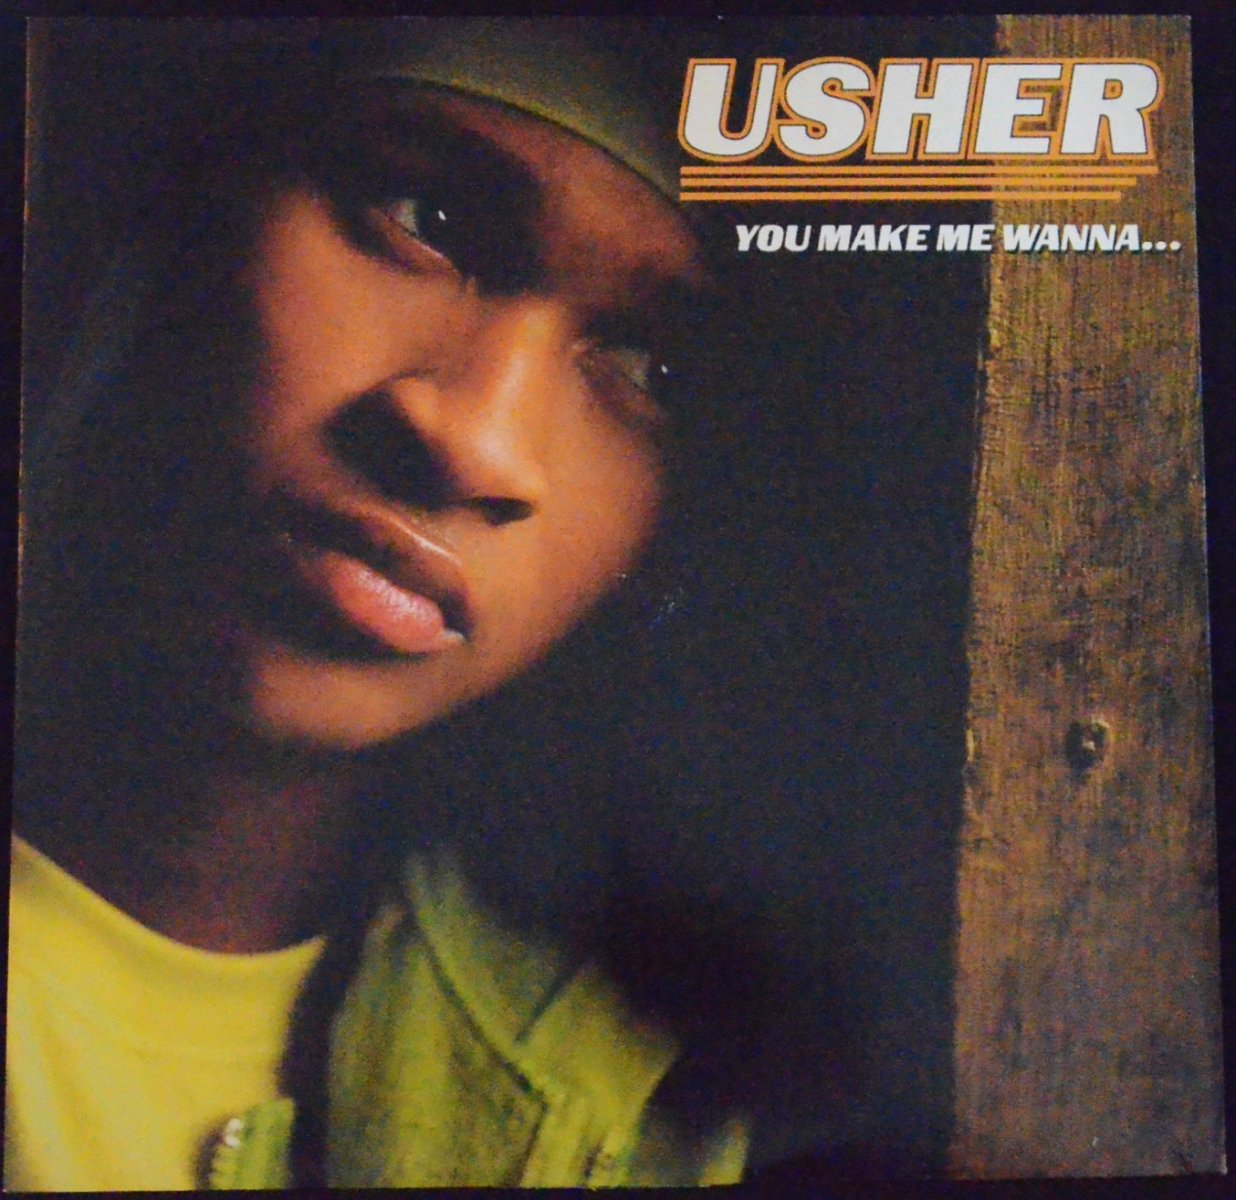 USHER ‎/ YOU MAKE ME WANNA (12